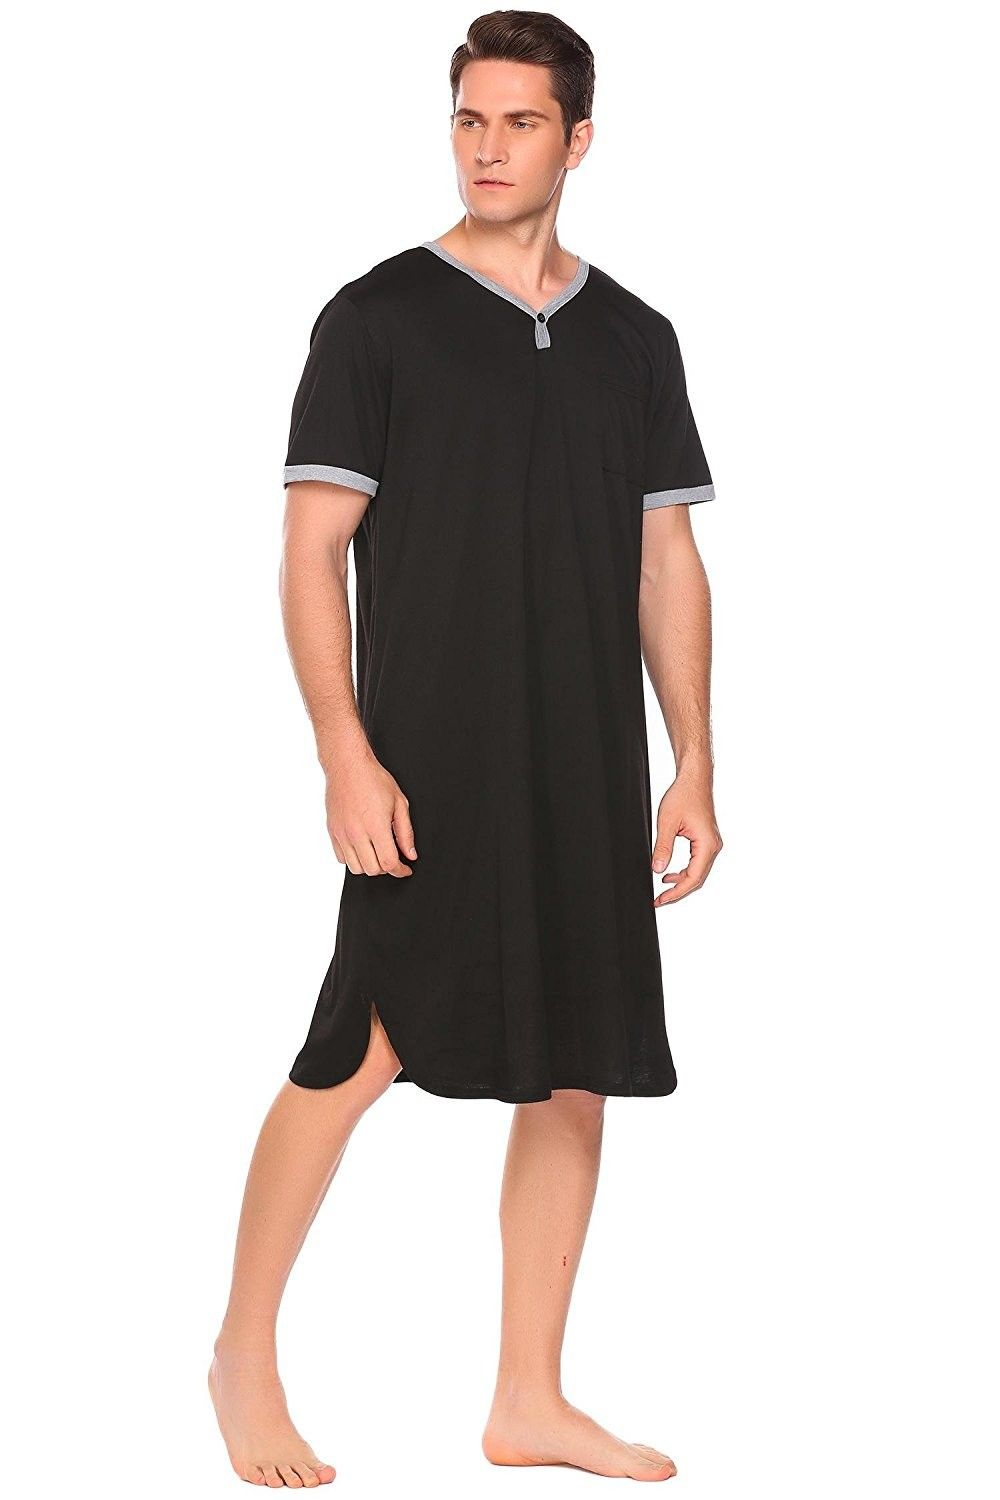 Mens Nightshirt Cotton Nightwear Short Sleeve Soft Loose Pajama Sleep Shirt